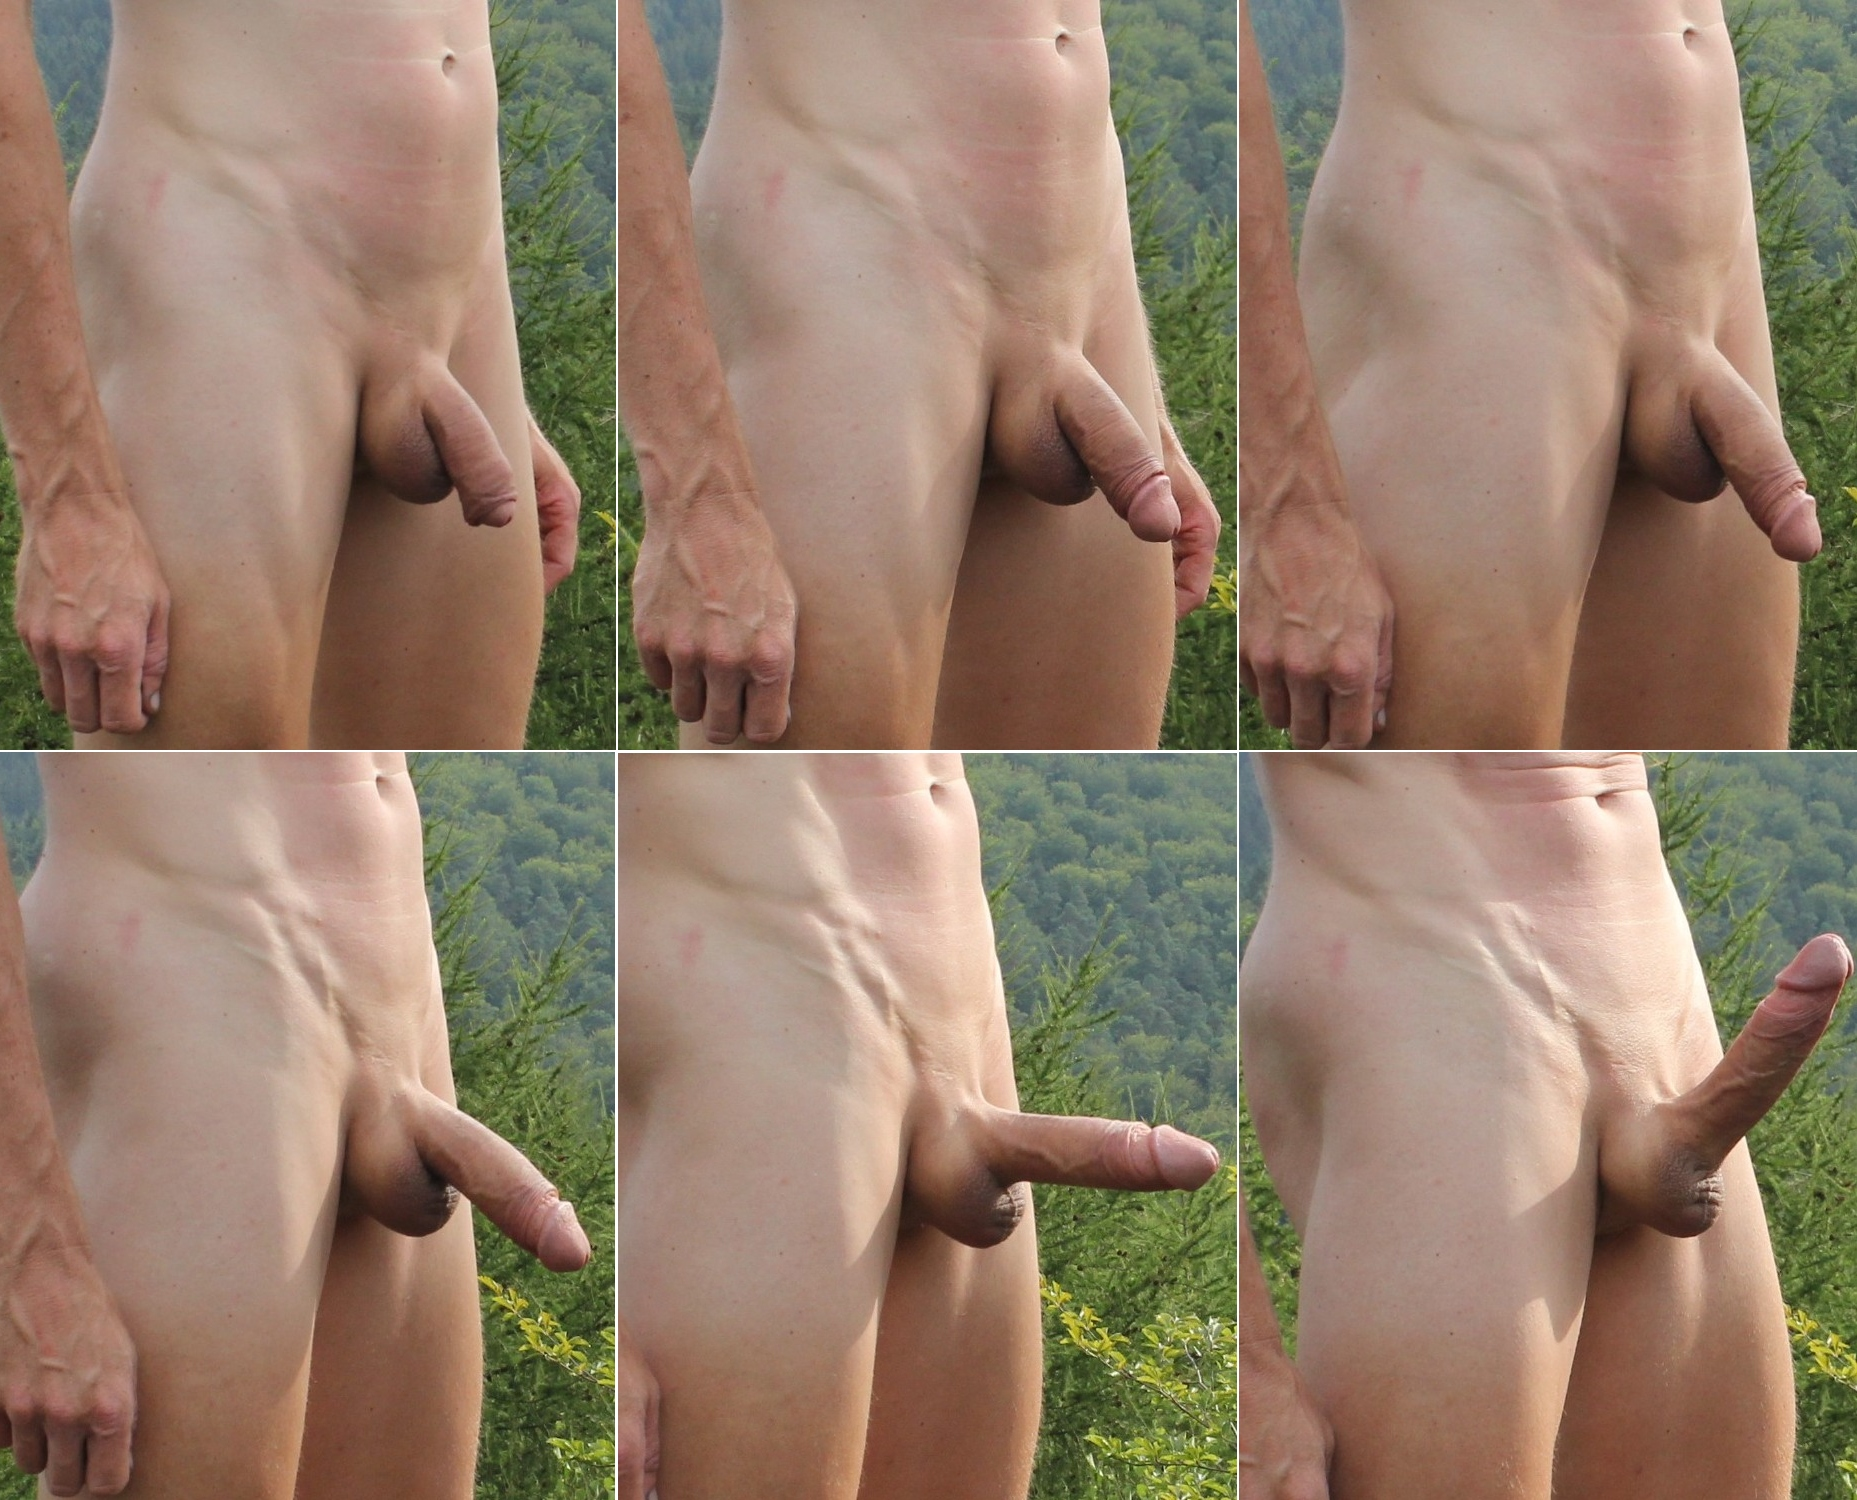 File:Flaccid to Stiffy Penis, Erection development,.jpg